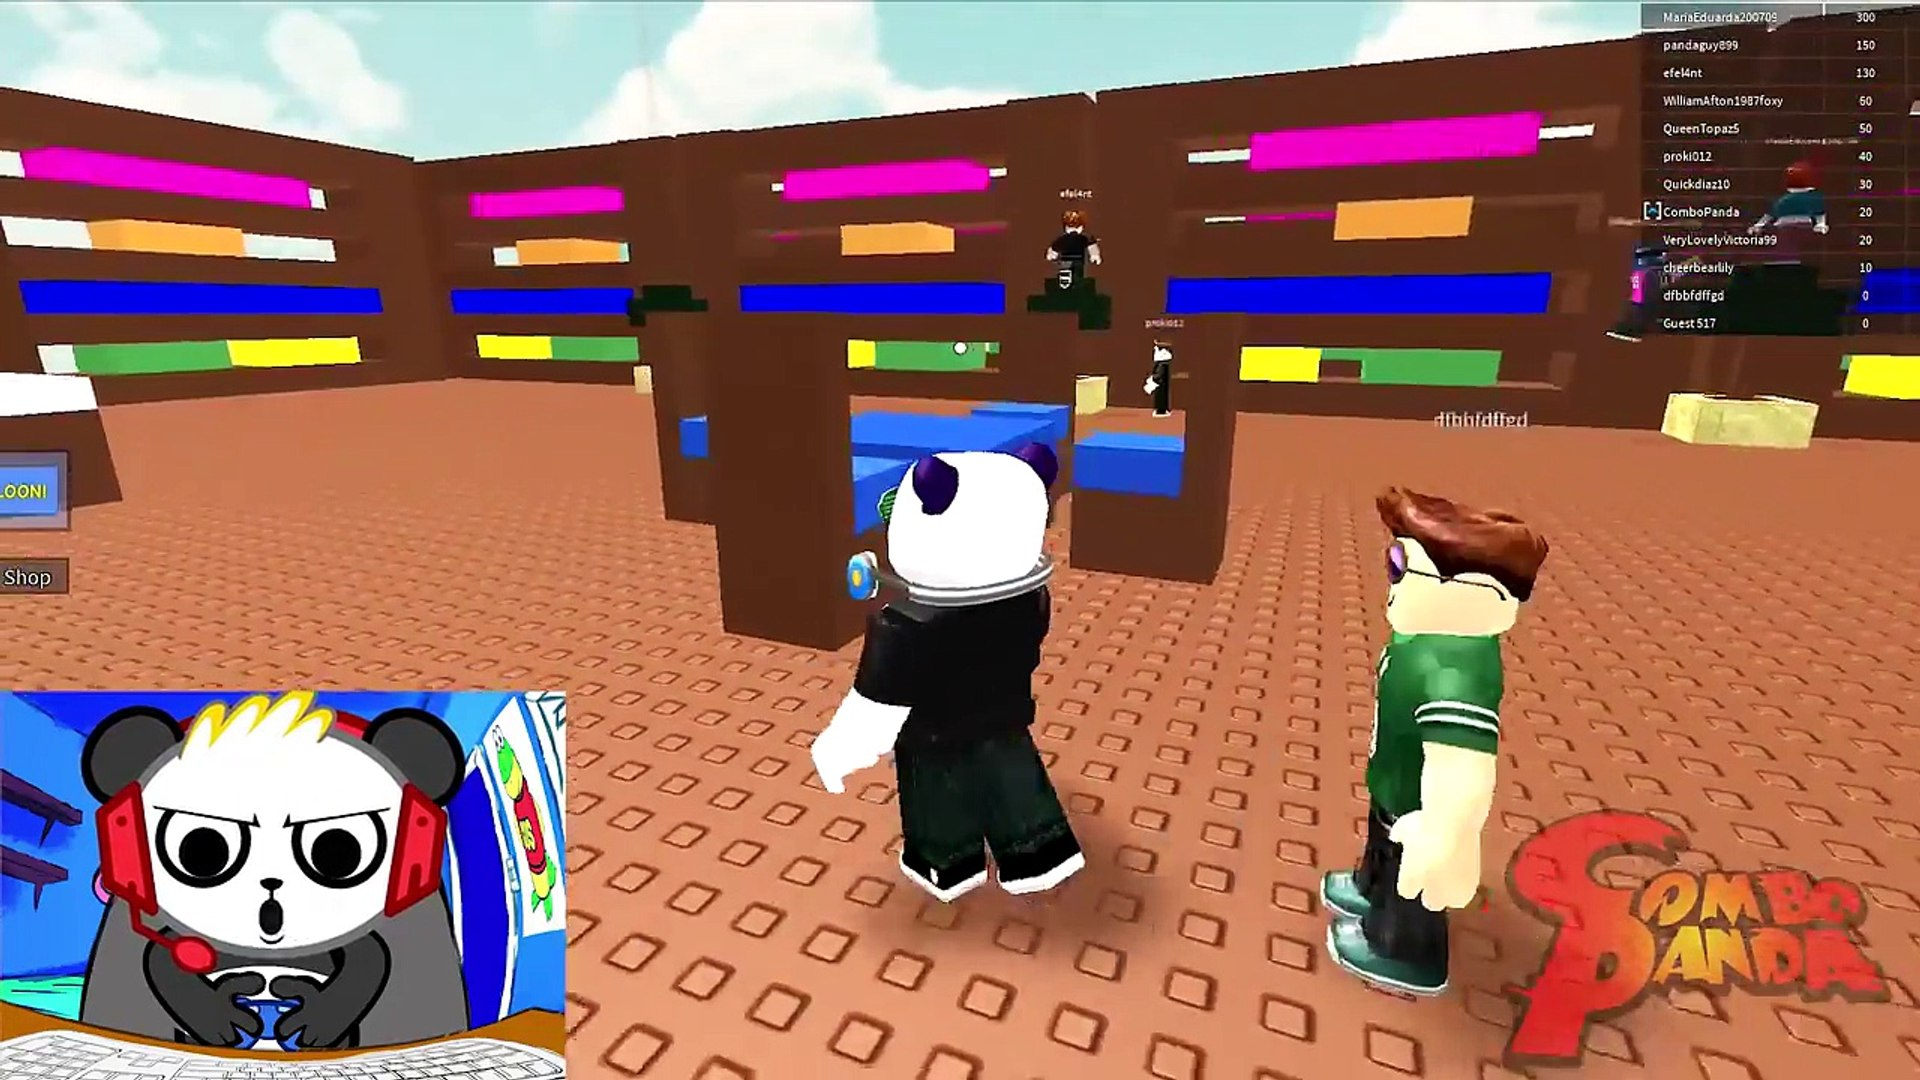 Death By Lava Roblox Roblox The Floor Is Lava Let S Play With Combo Panda Dailymotion Video